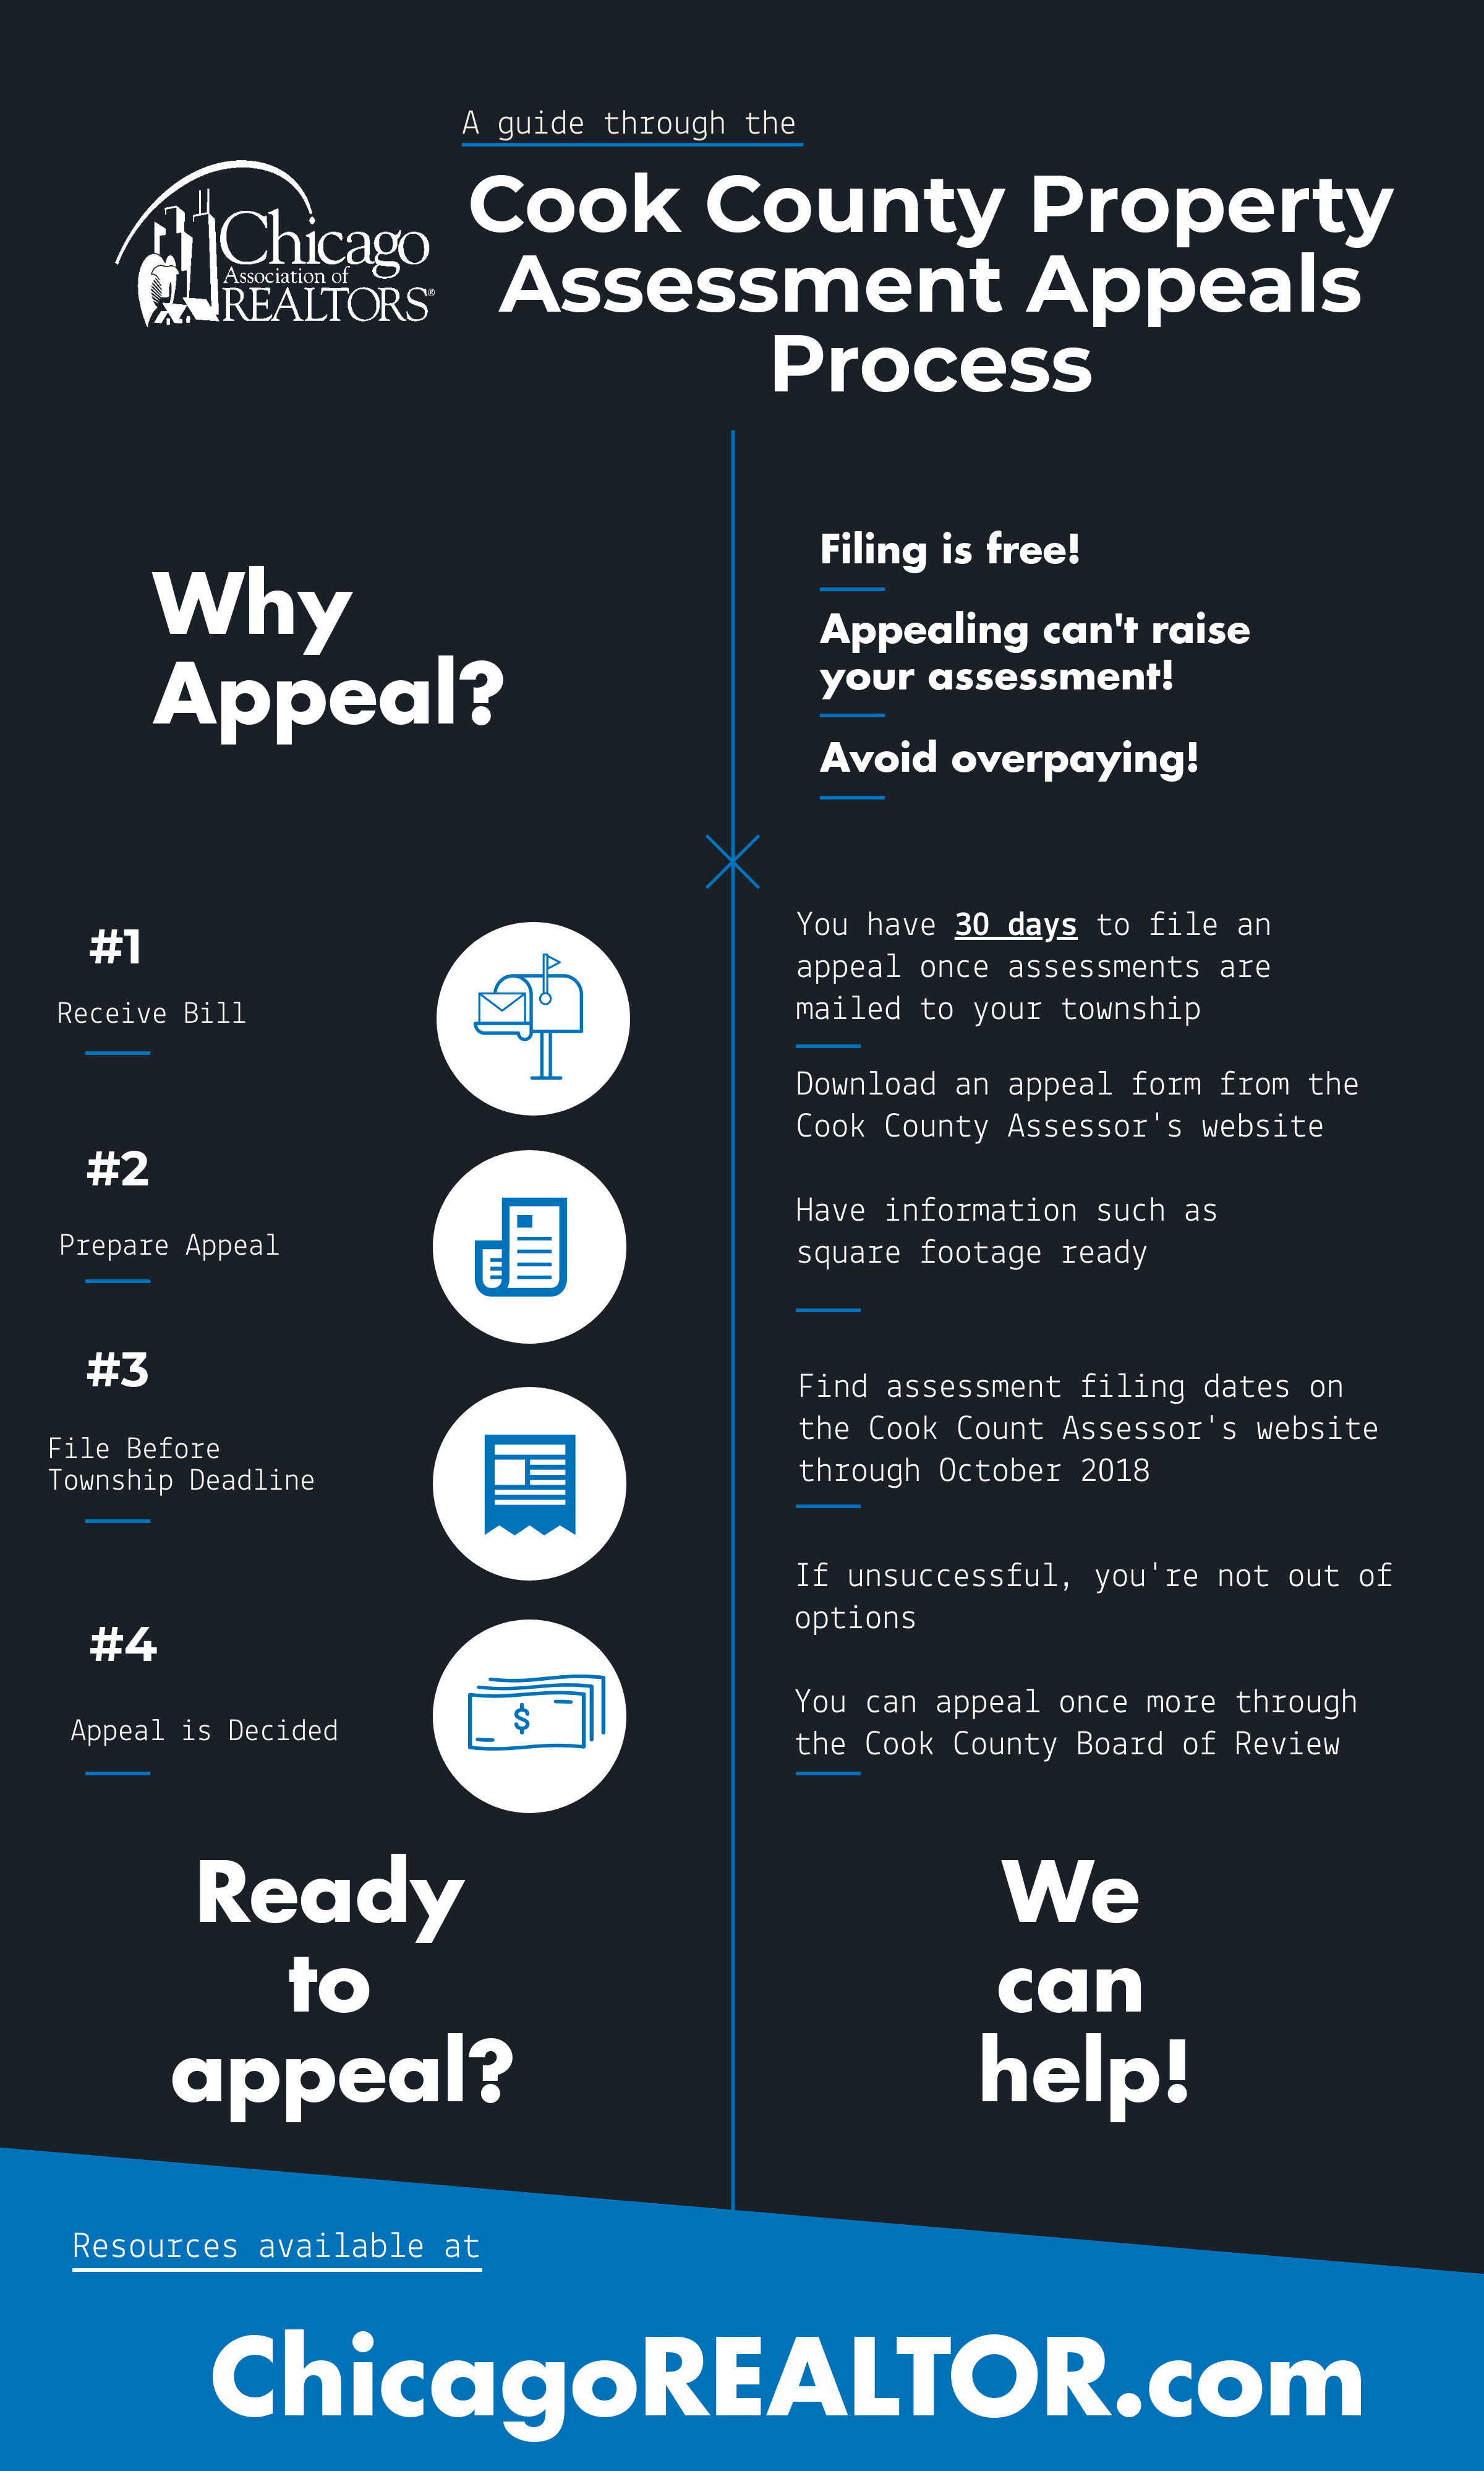 A Guide Through the Cook County Property Assessment Appeals Process